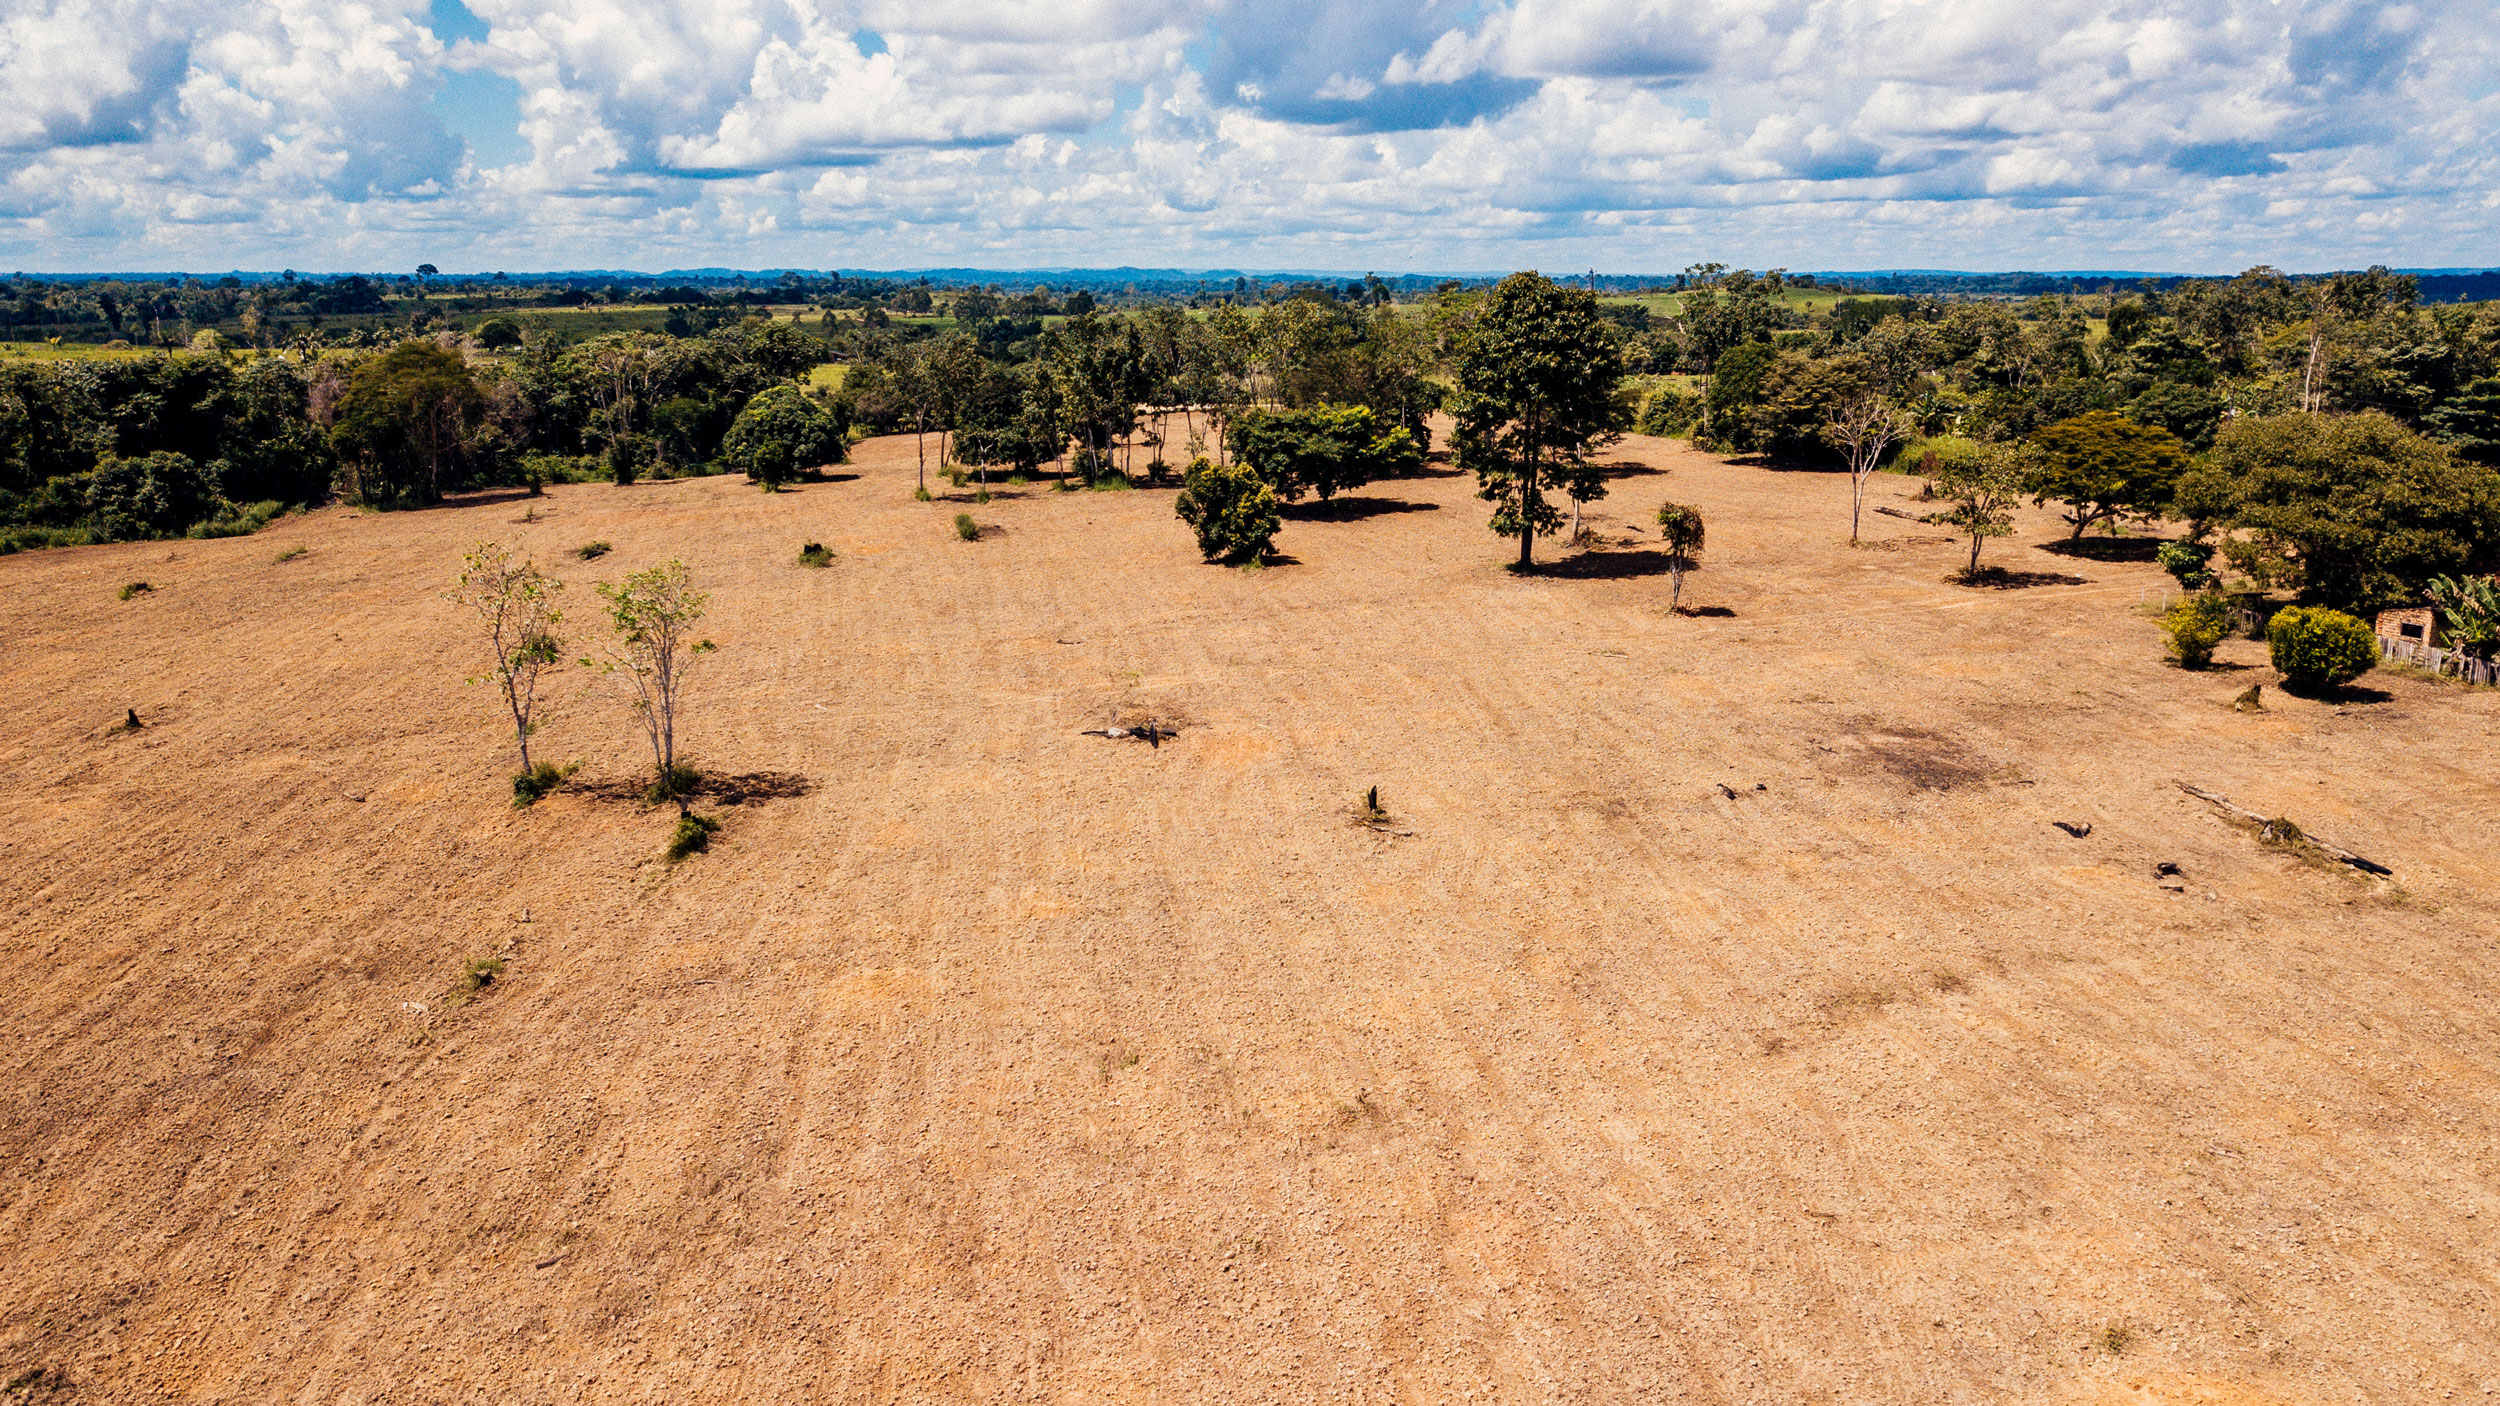 The Carbon Offset Market: Leveraging Forest Carbon's Value in the Brazilian Amazon